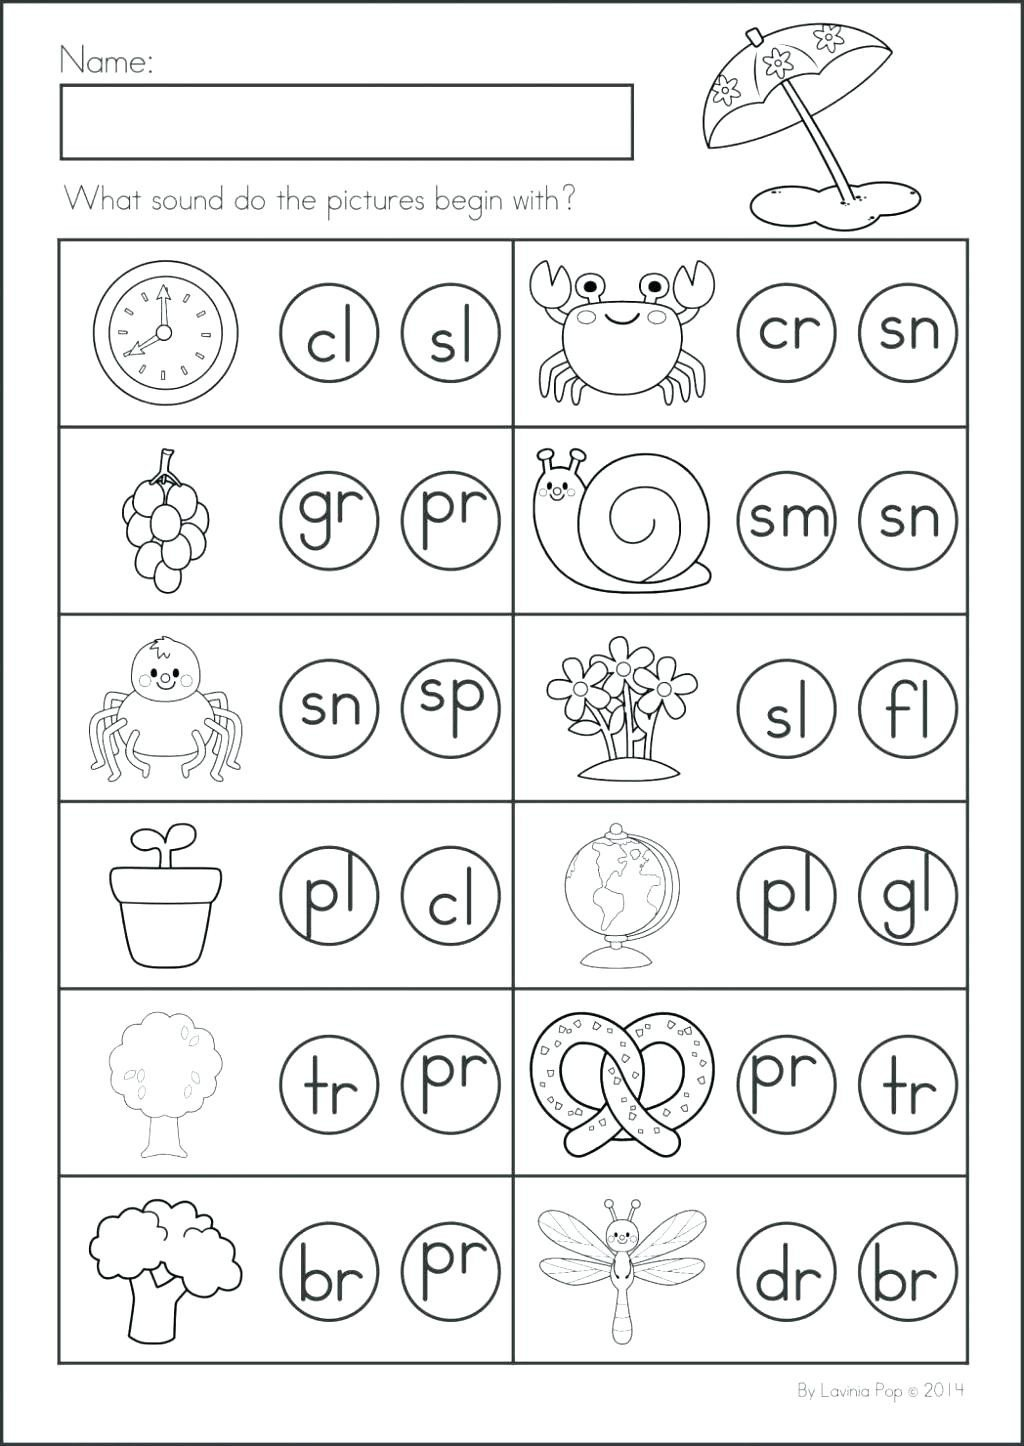 Kindergarten Phonics Worksheets Beginning sounds Worksheet Kindergarten Phonics Lessons Worksheets